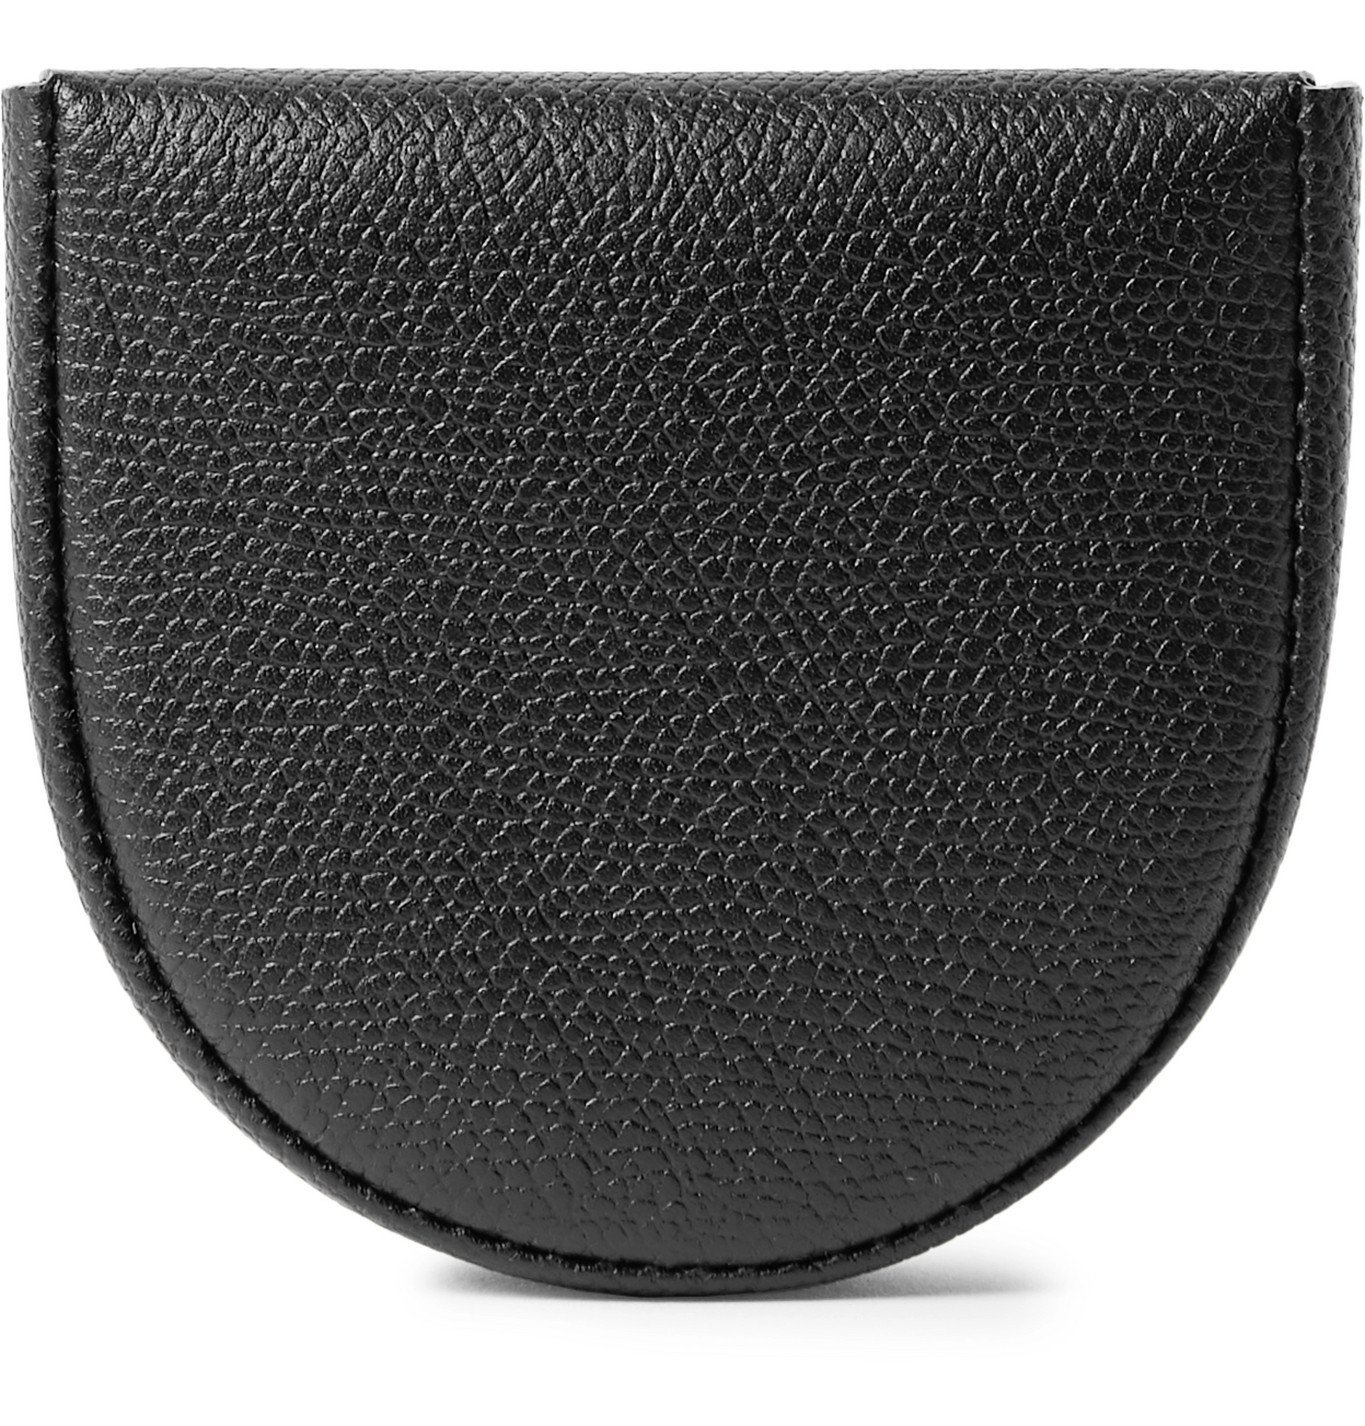 Photo: Valextra - Pebble-Grain Leather Coin Wallet - Black